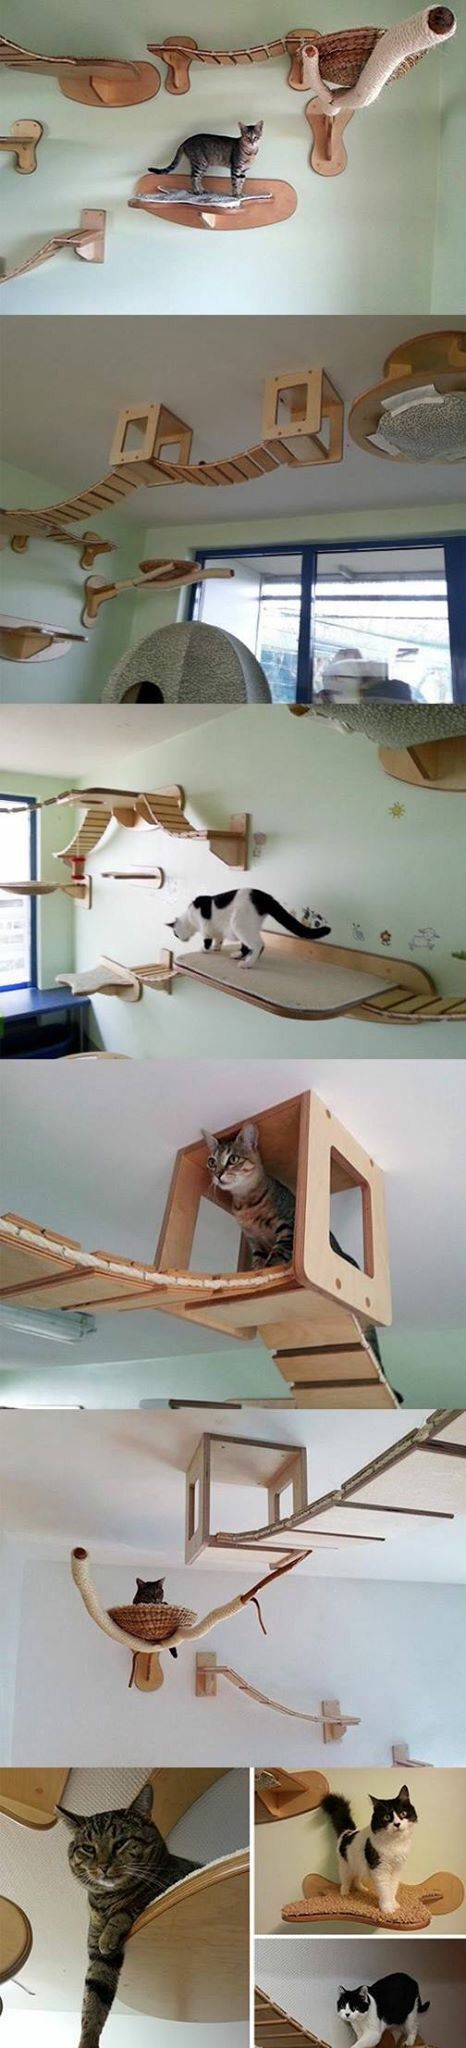 For cats an alternate path down the stairs stairways for cats an alternate path down the stairs stairways pinterest cat climbing wall cat and cat stairs amipublicfo Images